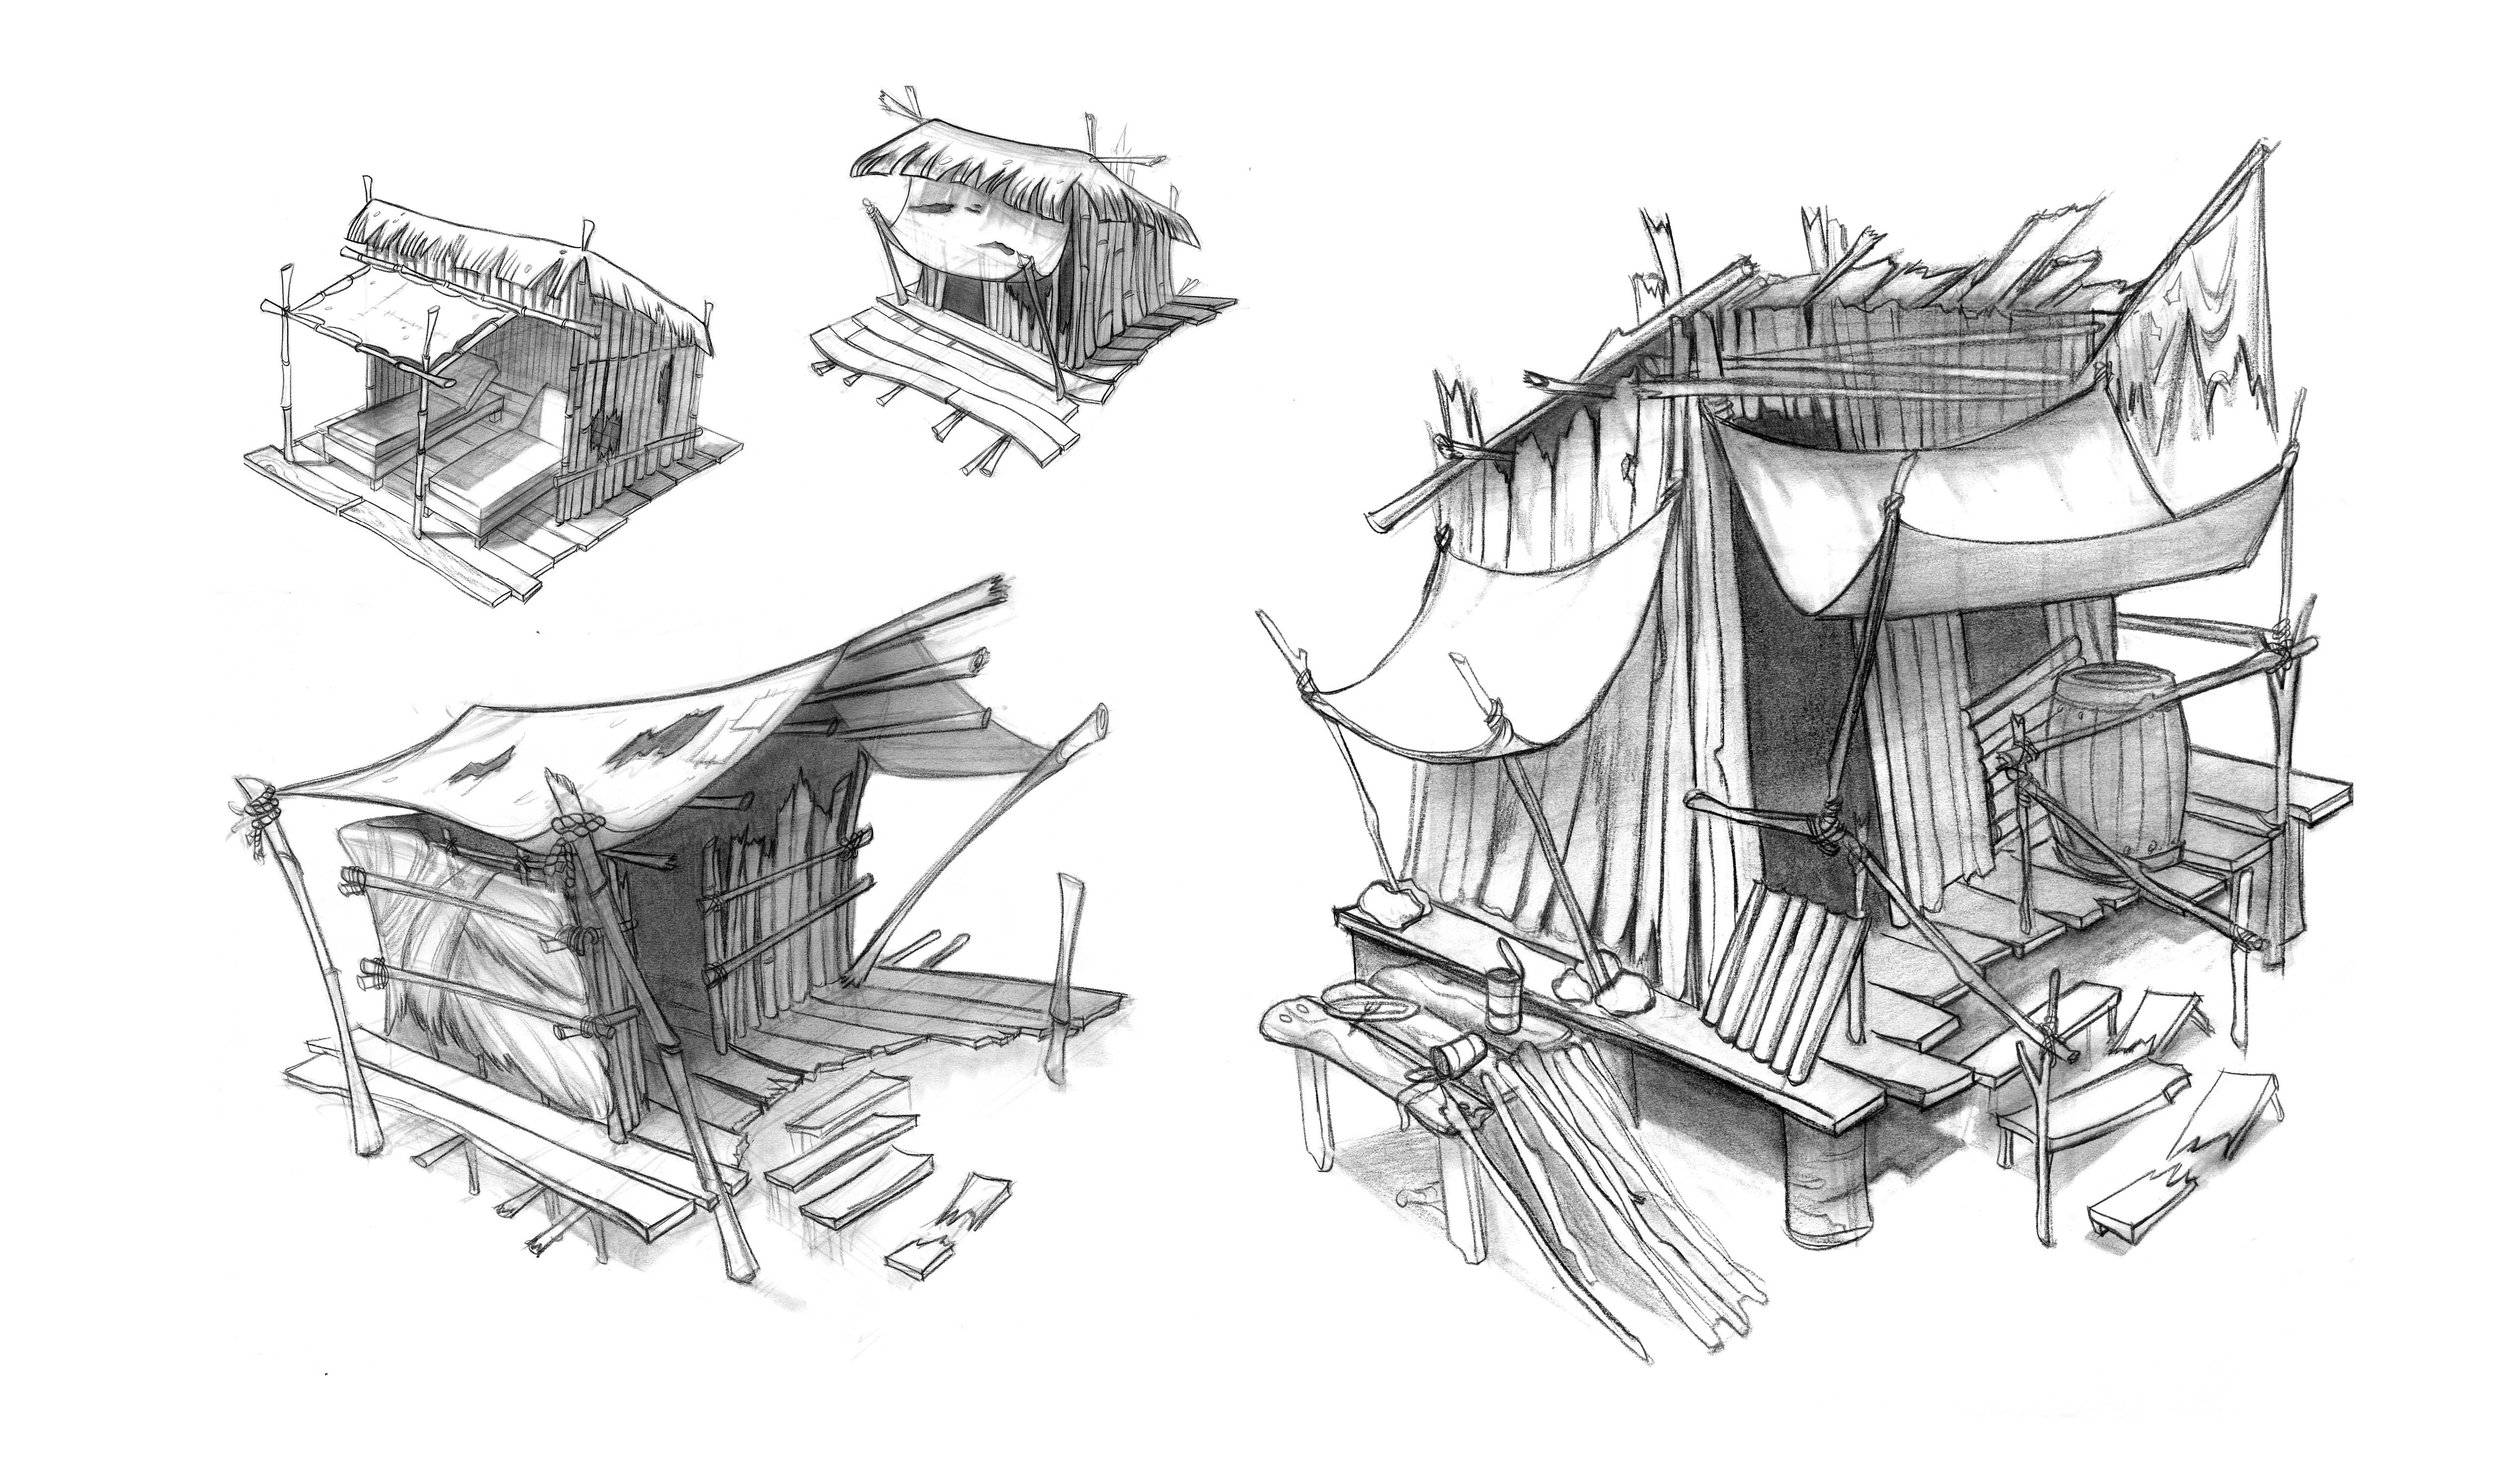 MITCHELL_LIN_0285721_TERM5_SKETCHING_FOR_ENTERTAINMENT_WILLWESTON_MITCHELL.LIN21@GMAIL.jpg